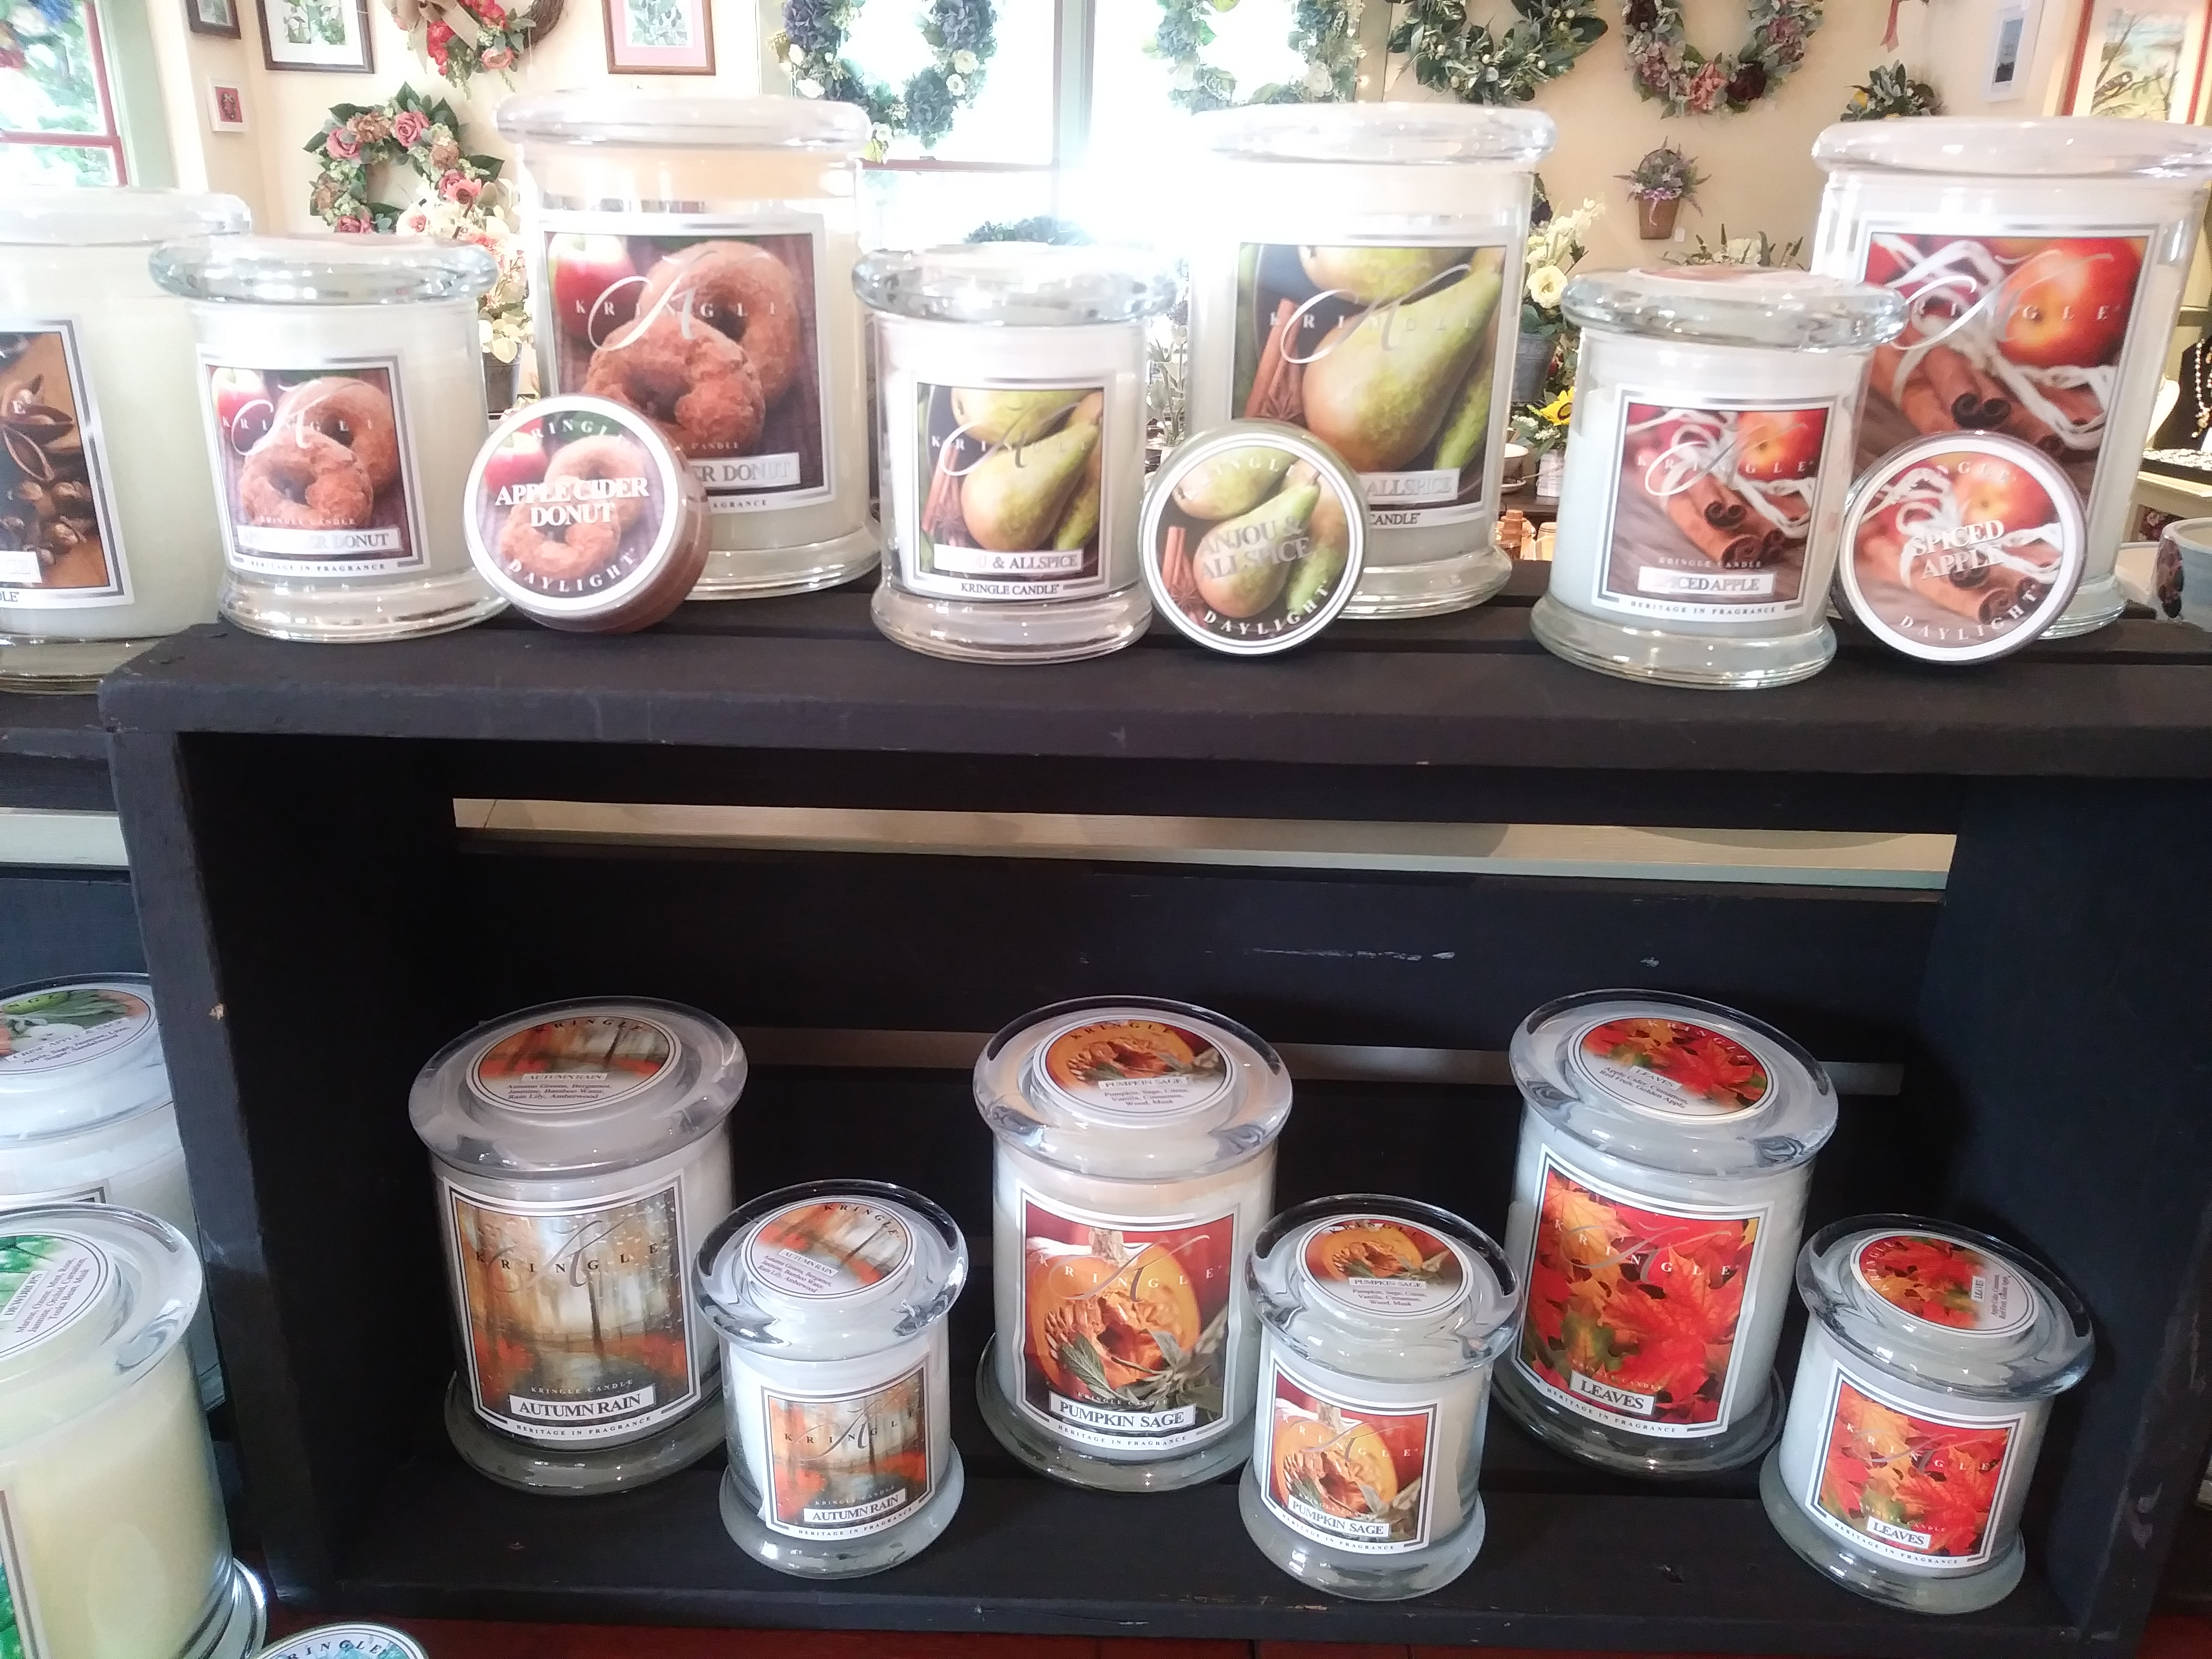 Fall candles from Kringle Candle